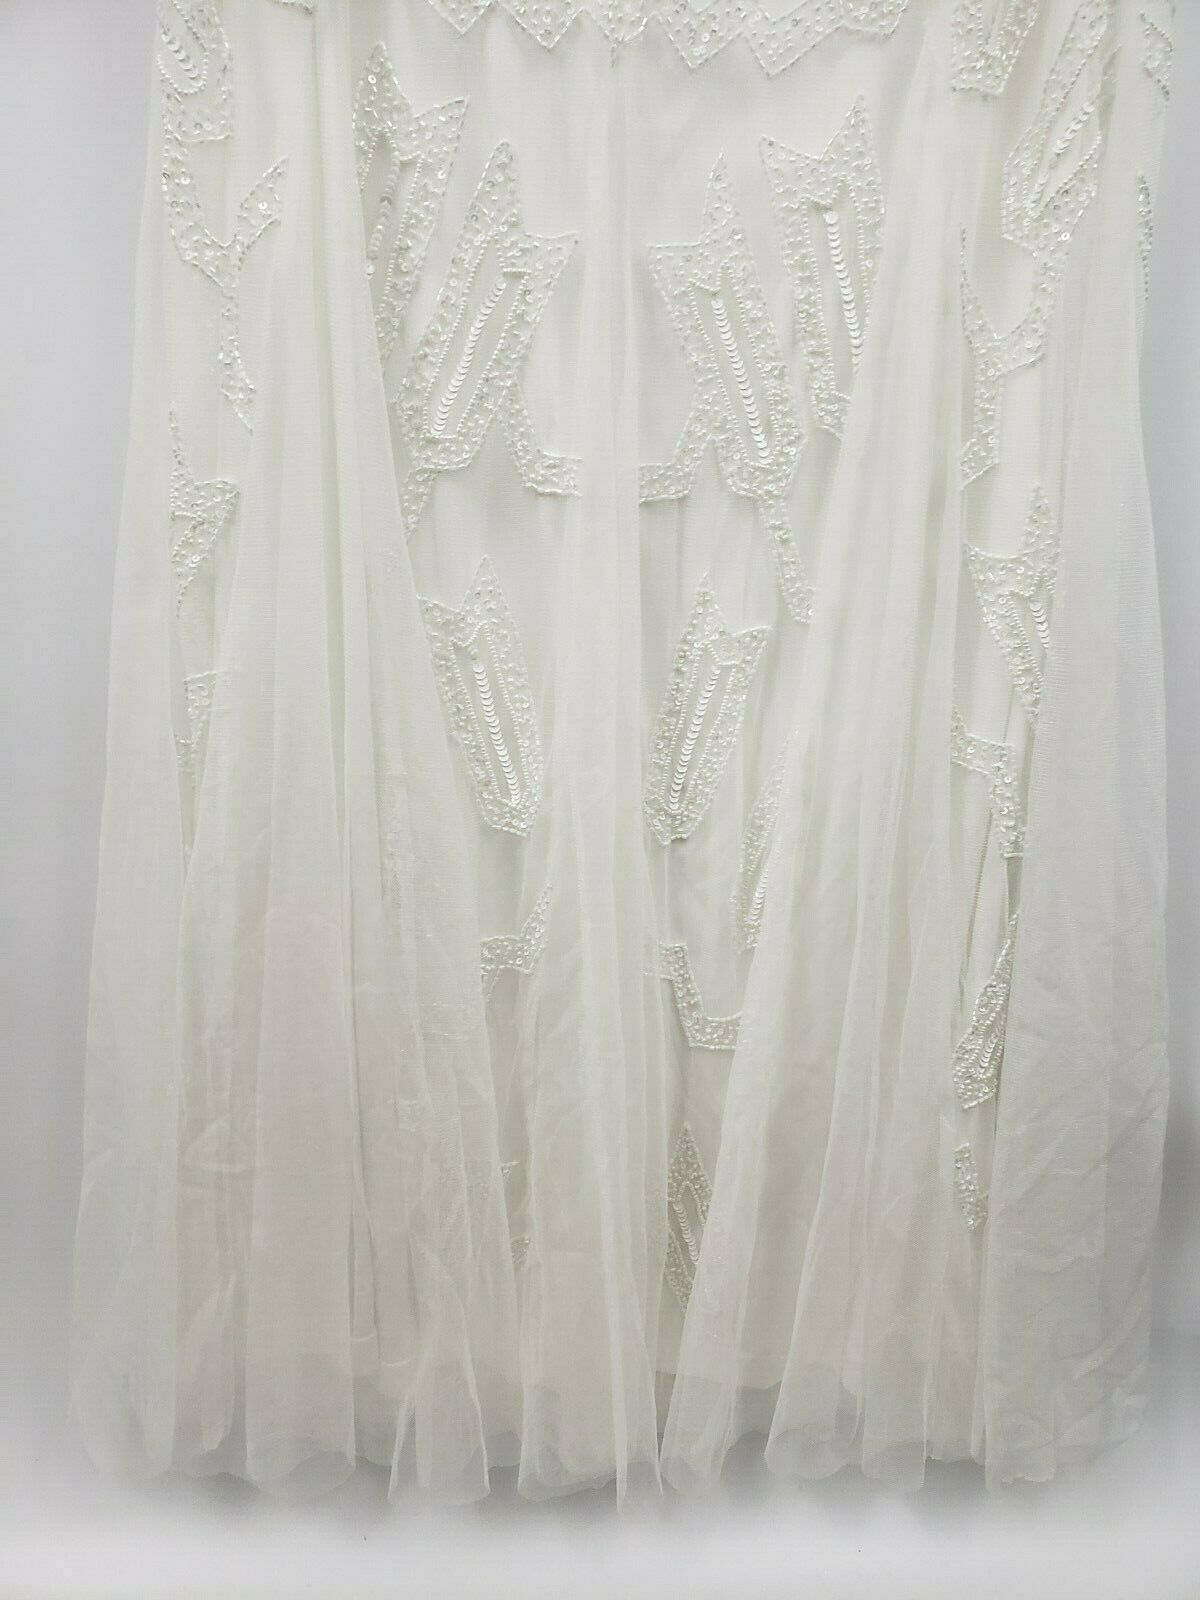 Adrianna Papell Women's Floral Sequined Beaded Mermaid Gown Dress White Size 12